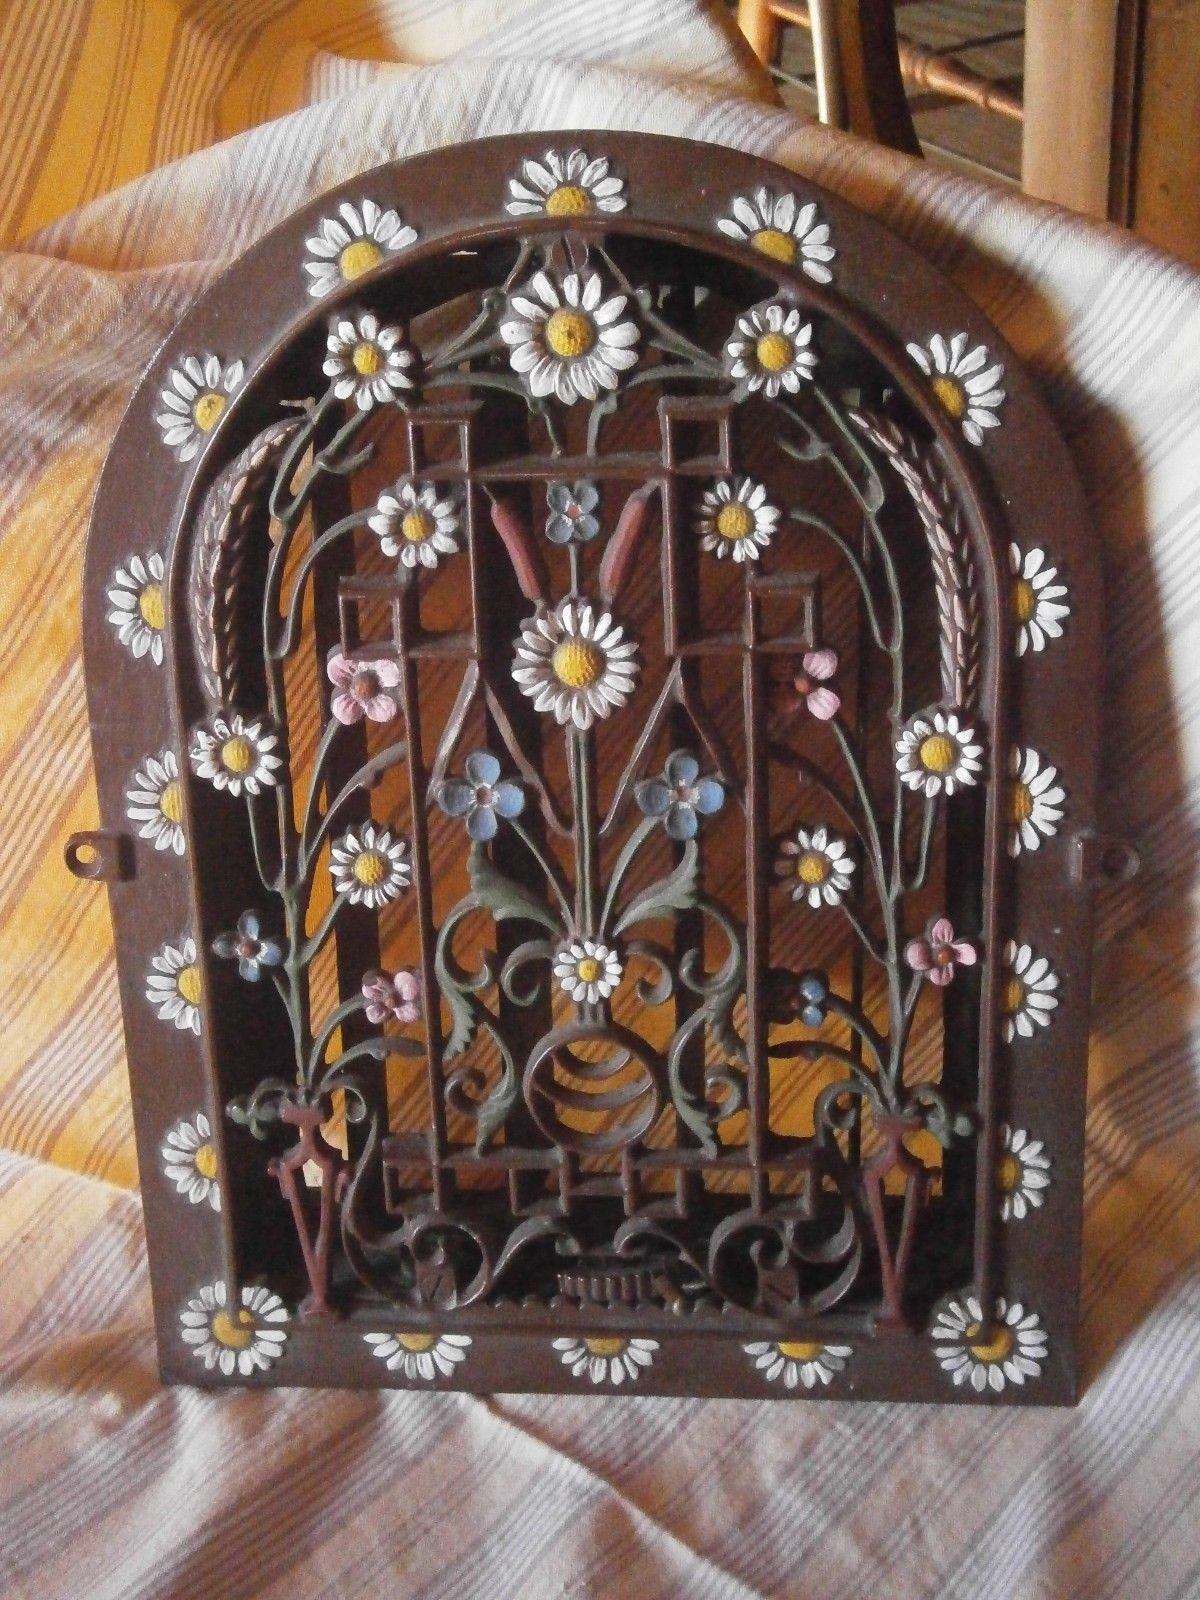 Antique Cast Iron Heat Register Arch Top Decorative Wall Register Vent Ebay Antique Cast Iron Heat Registers Wall Registers